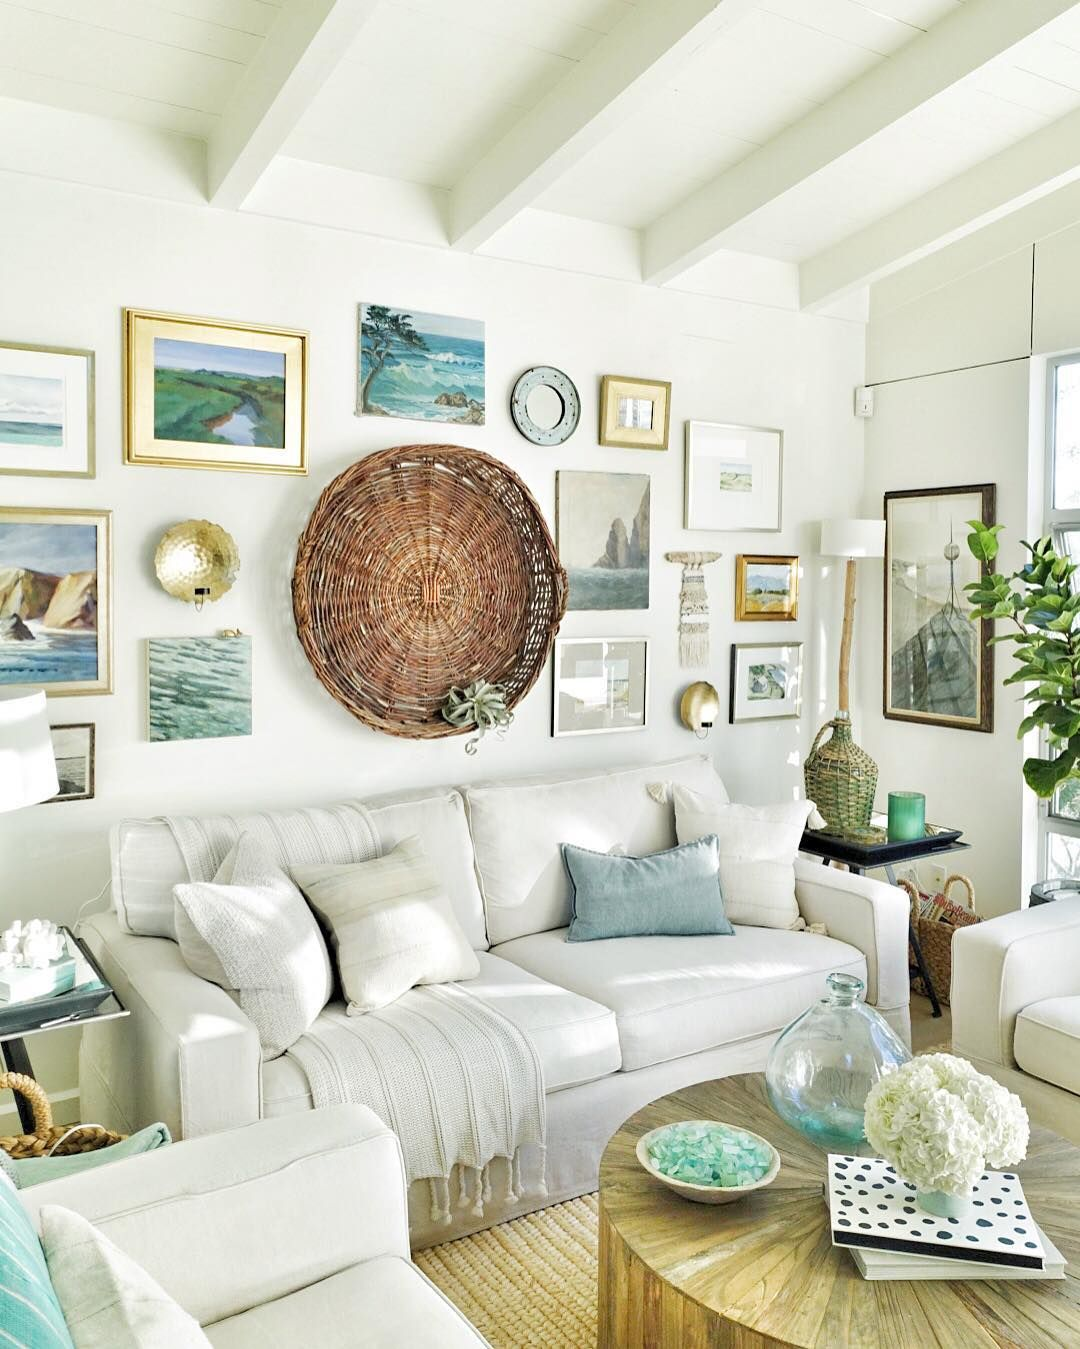 Coastal Farmhouse Wall Decor A Cozy Beach Cottage Living Room With A Seaside Inspired